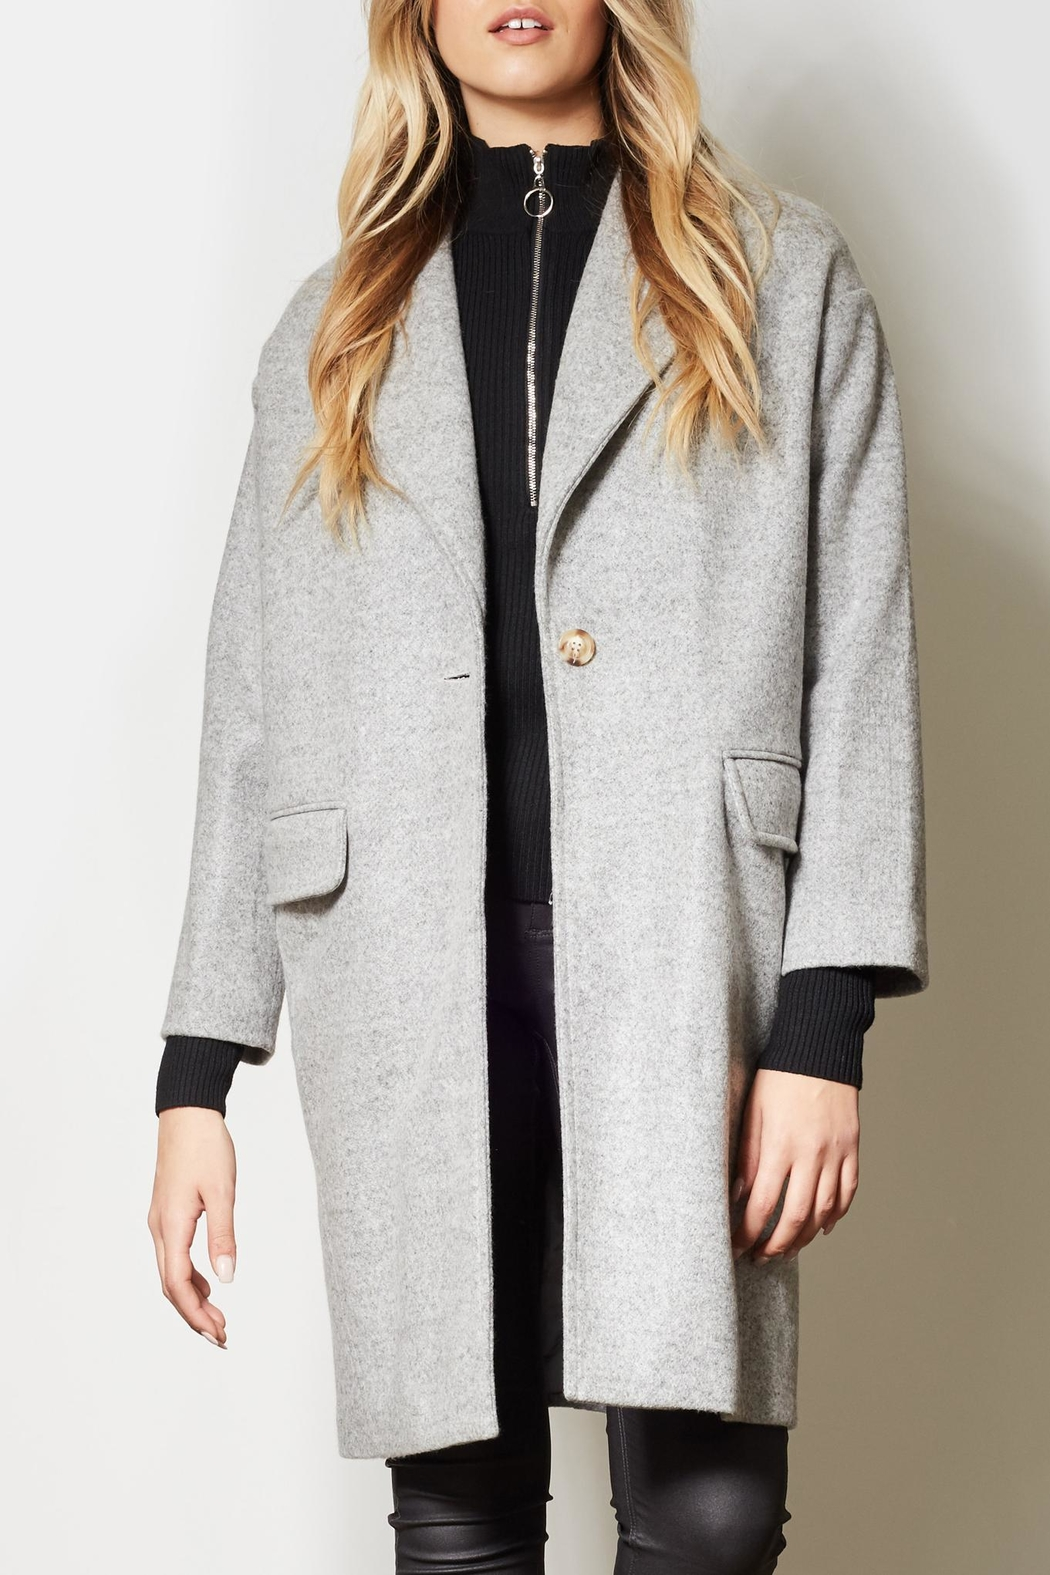 Pink Martini Collection Heather Grey Jacket - Main Image